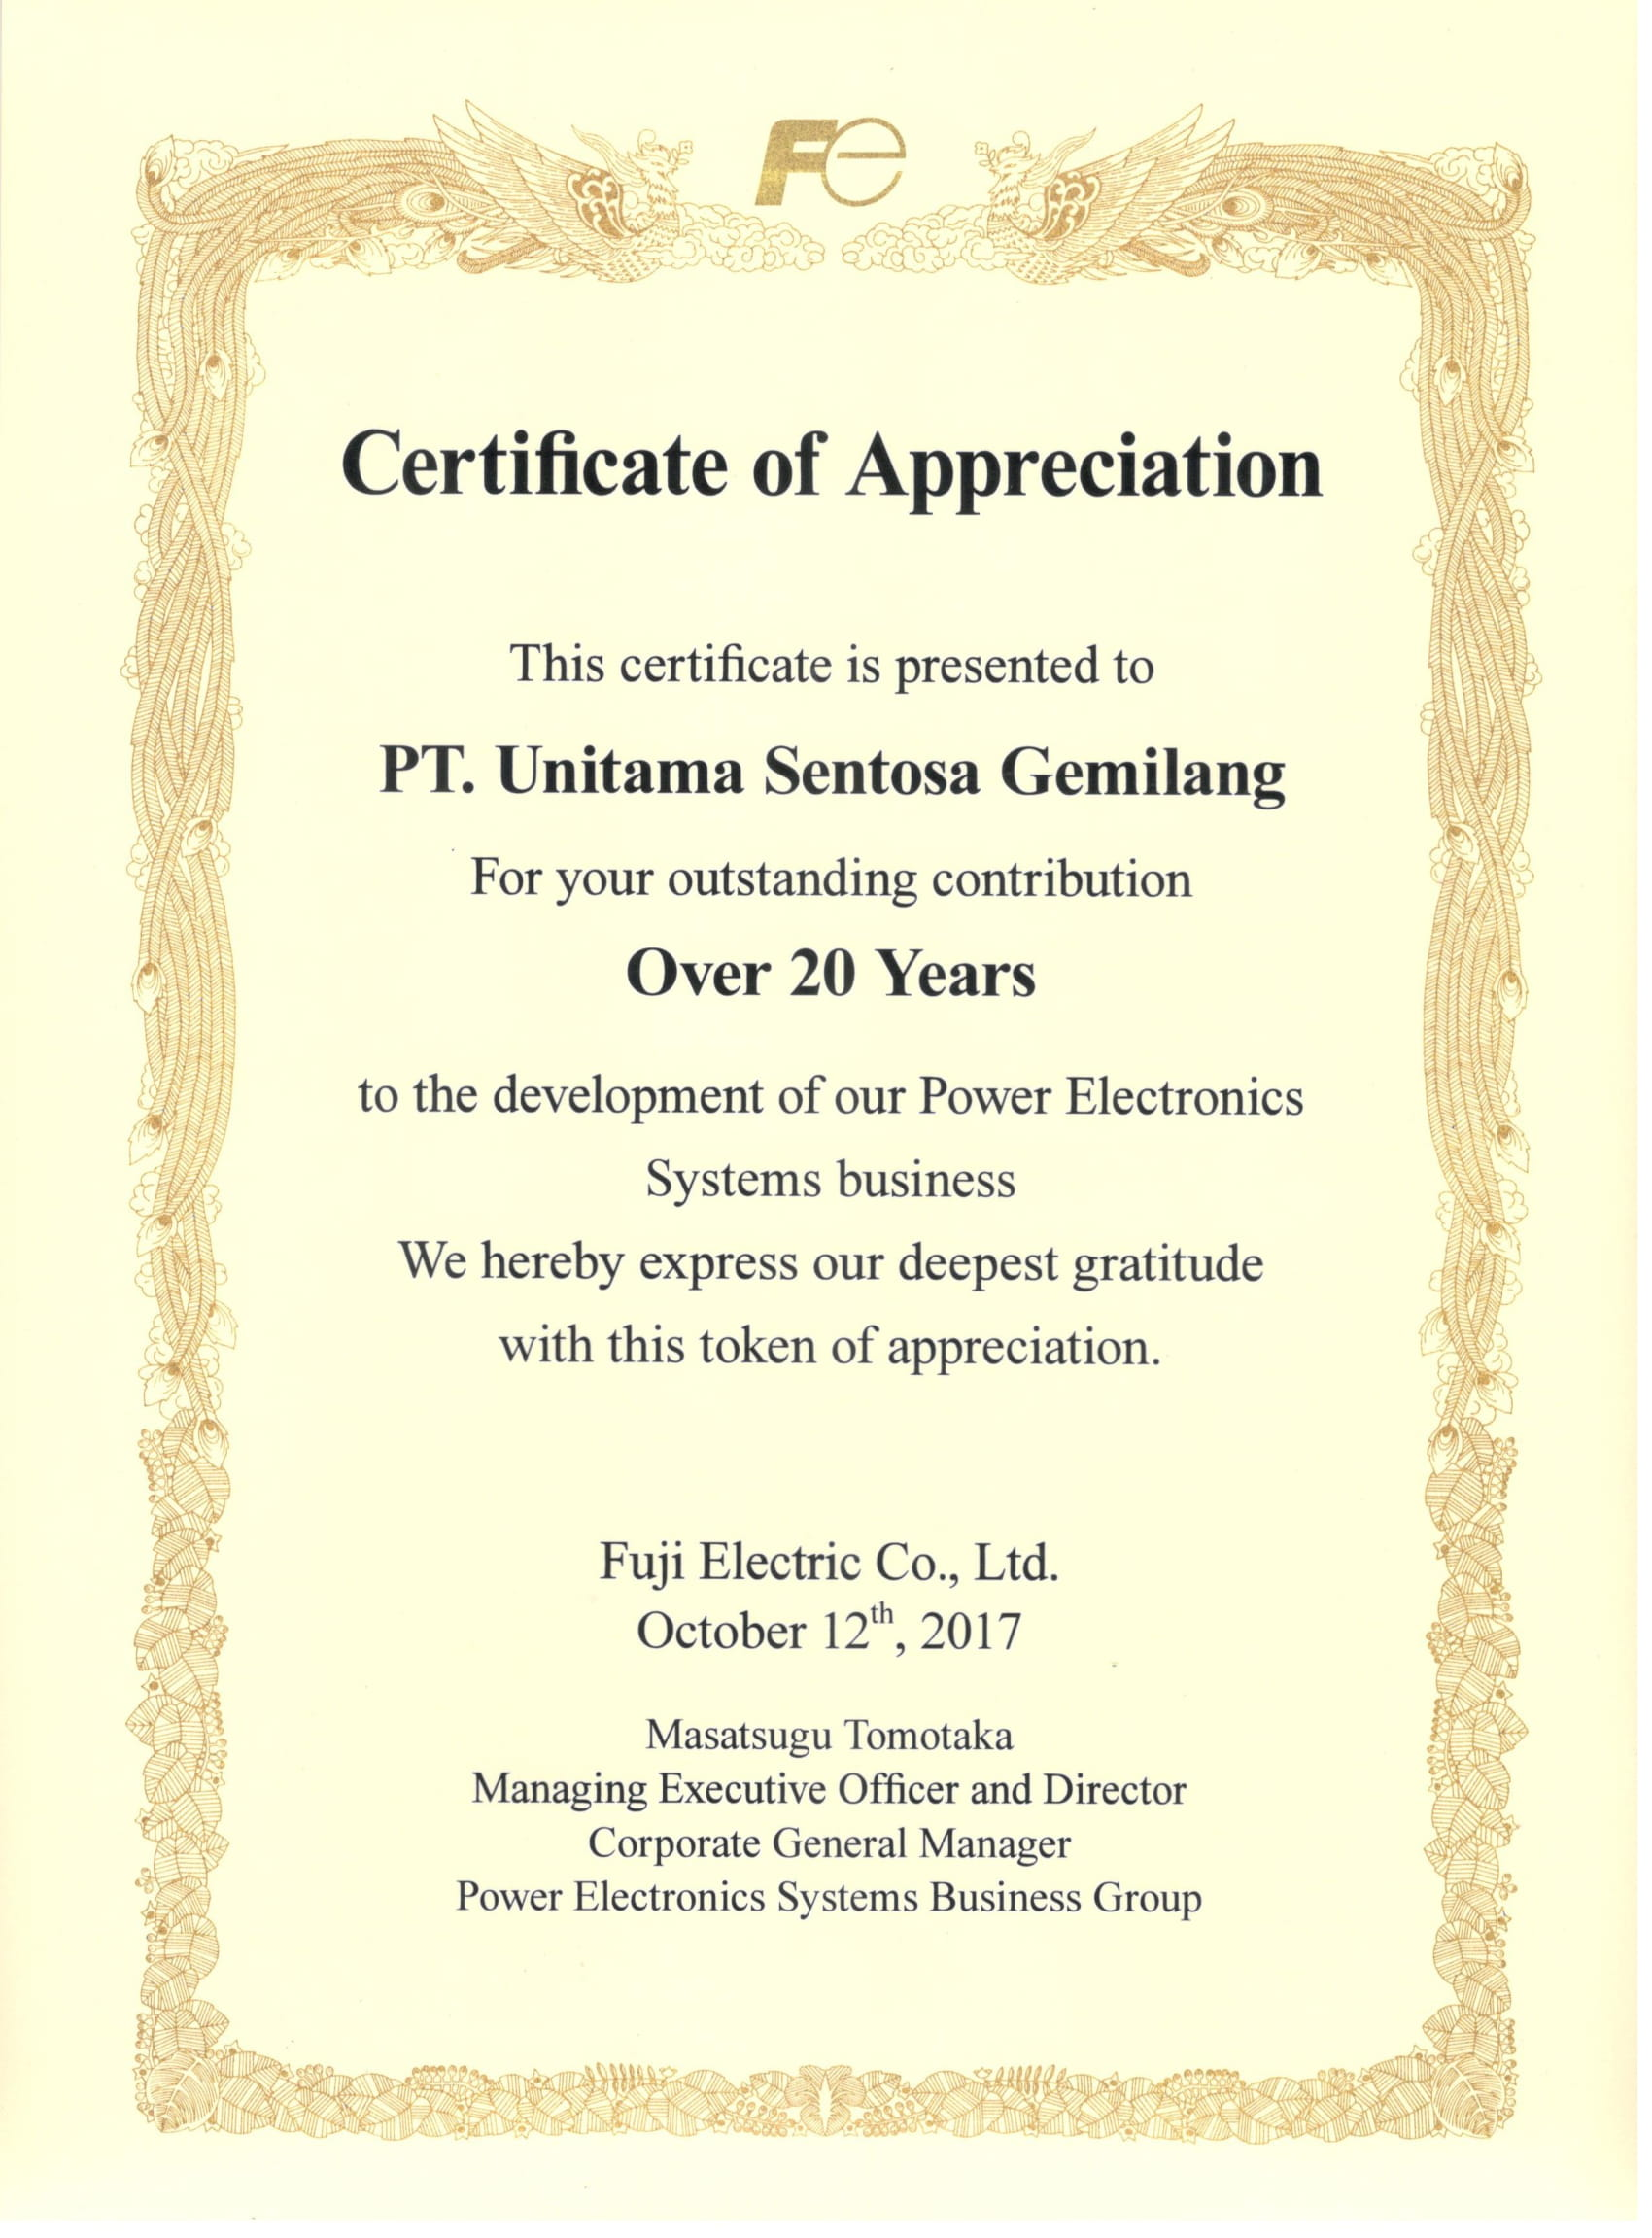 Fuji Certificate of Appreciation